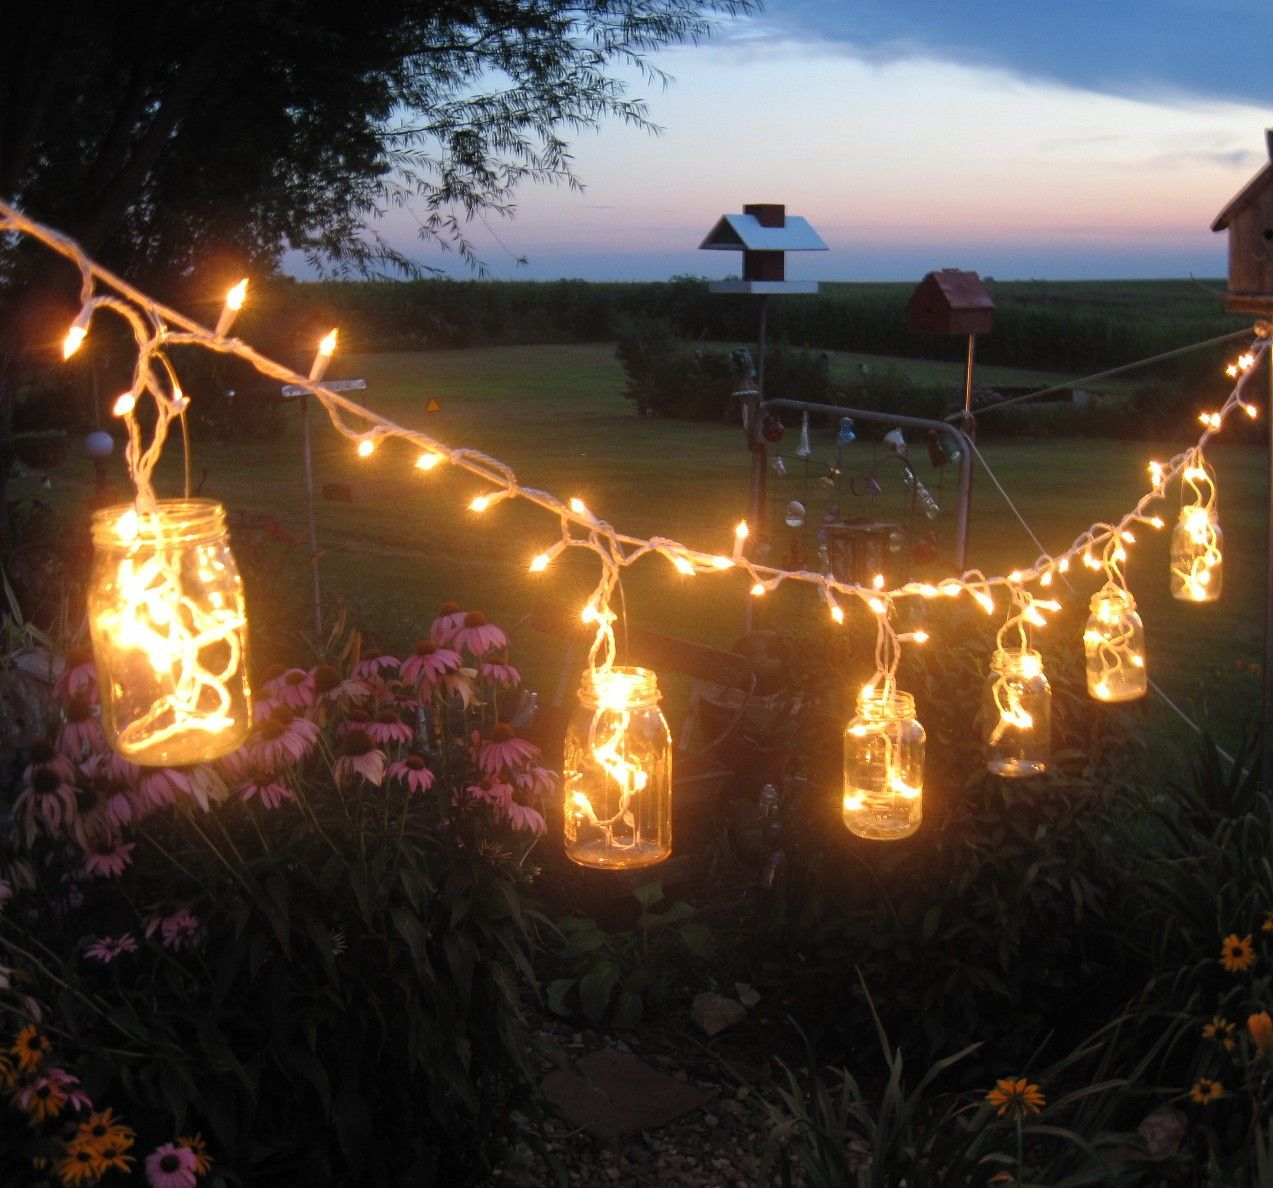 Fairy lights in the garden should be made compulsory. Just beautiful ...